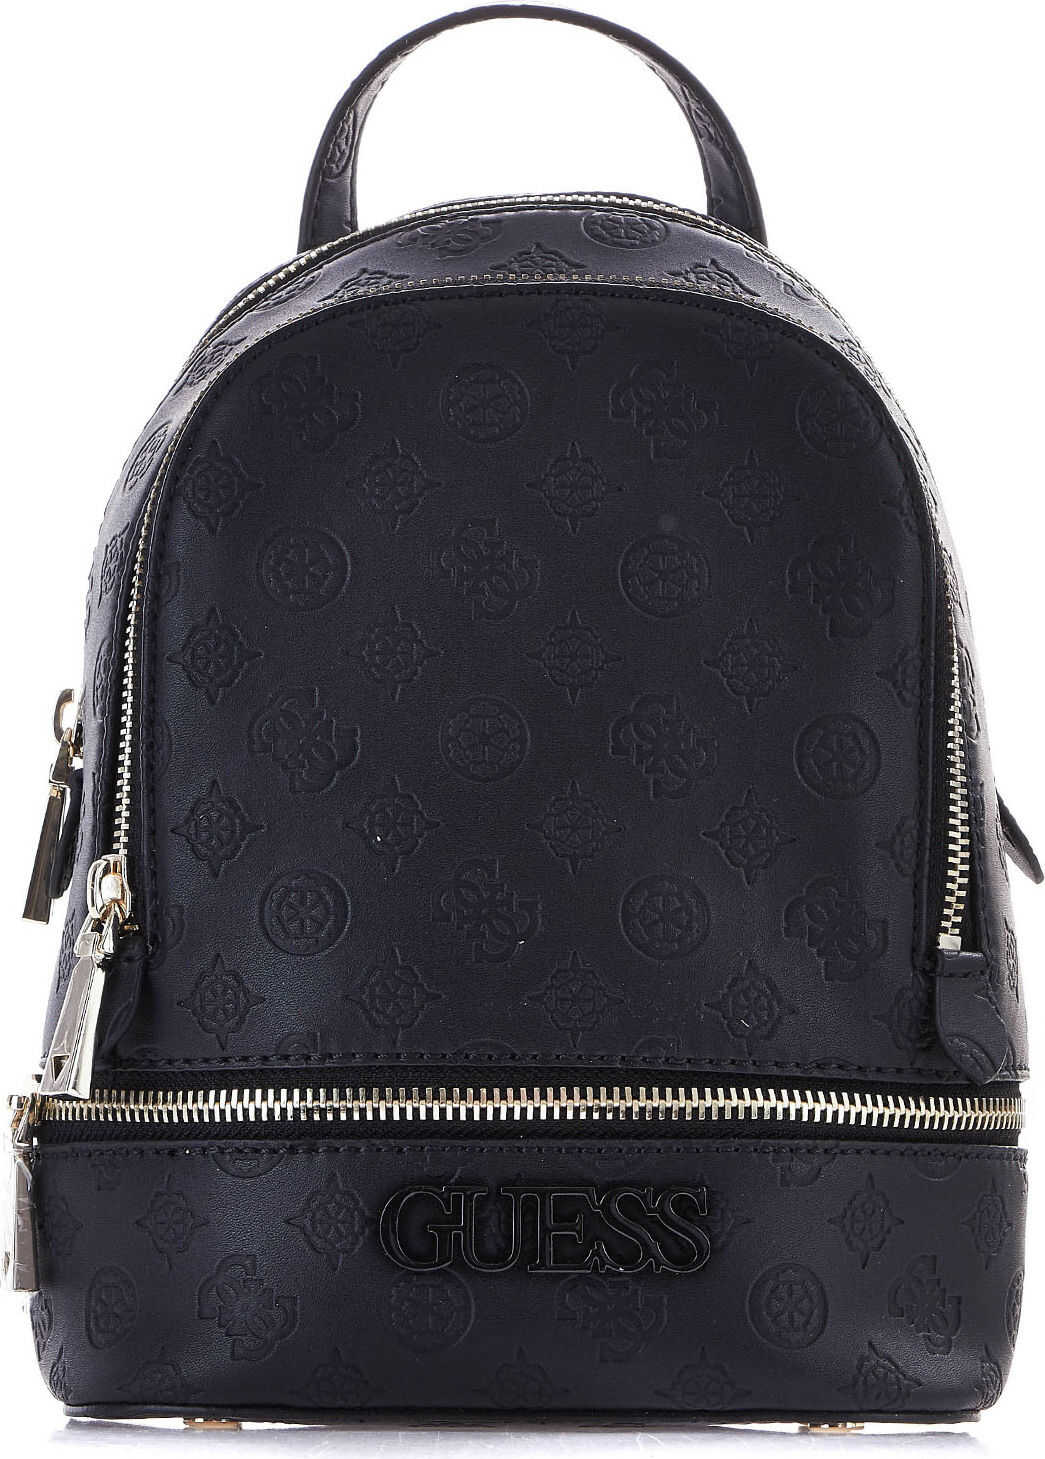 GUESS Small backpack with logo imprint Black